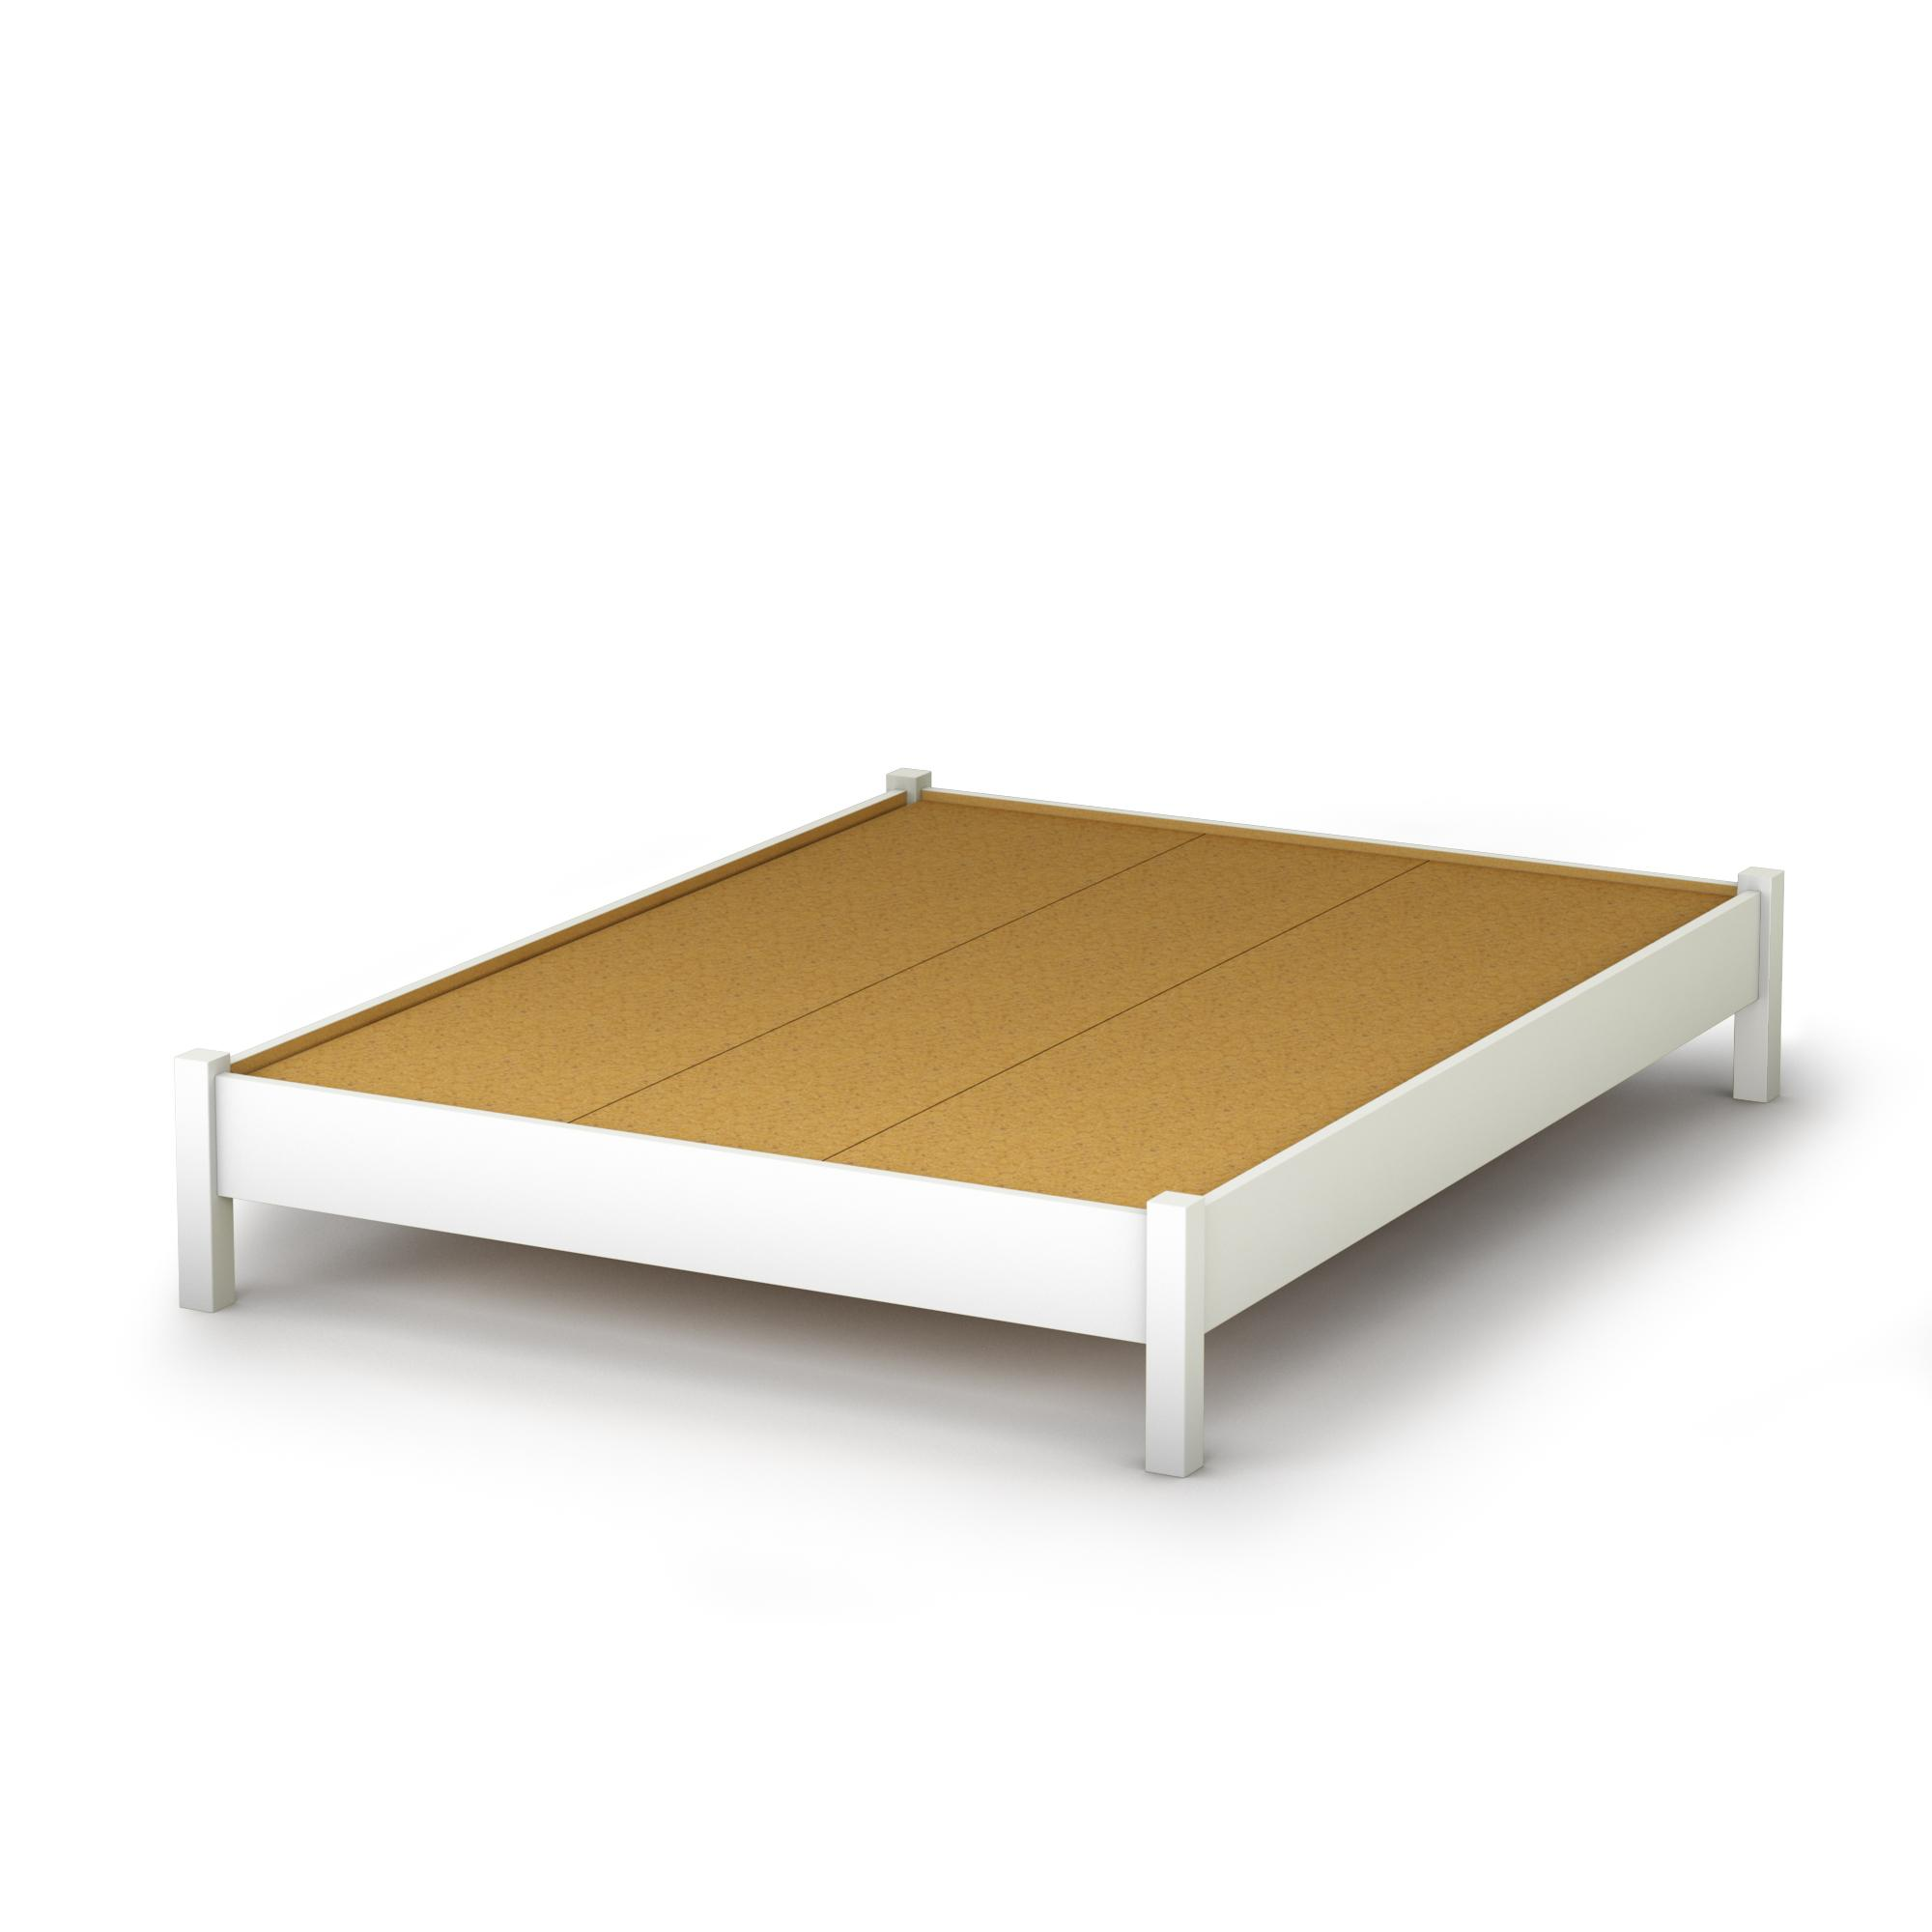 South Shore Step One Full Platform Bed 54 In Pure White By Oj Commerce 3050204